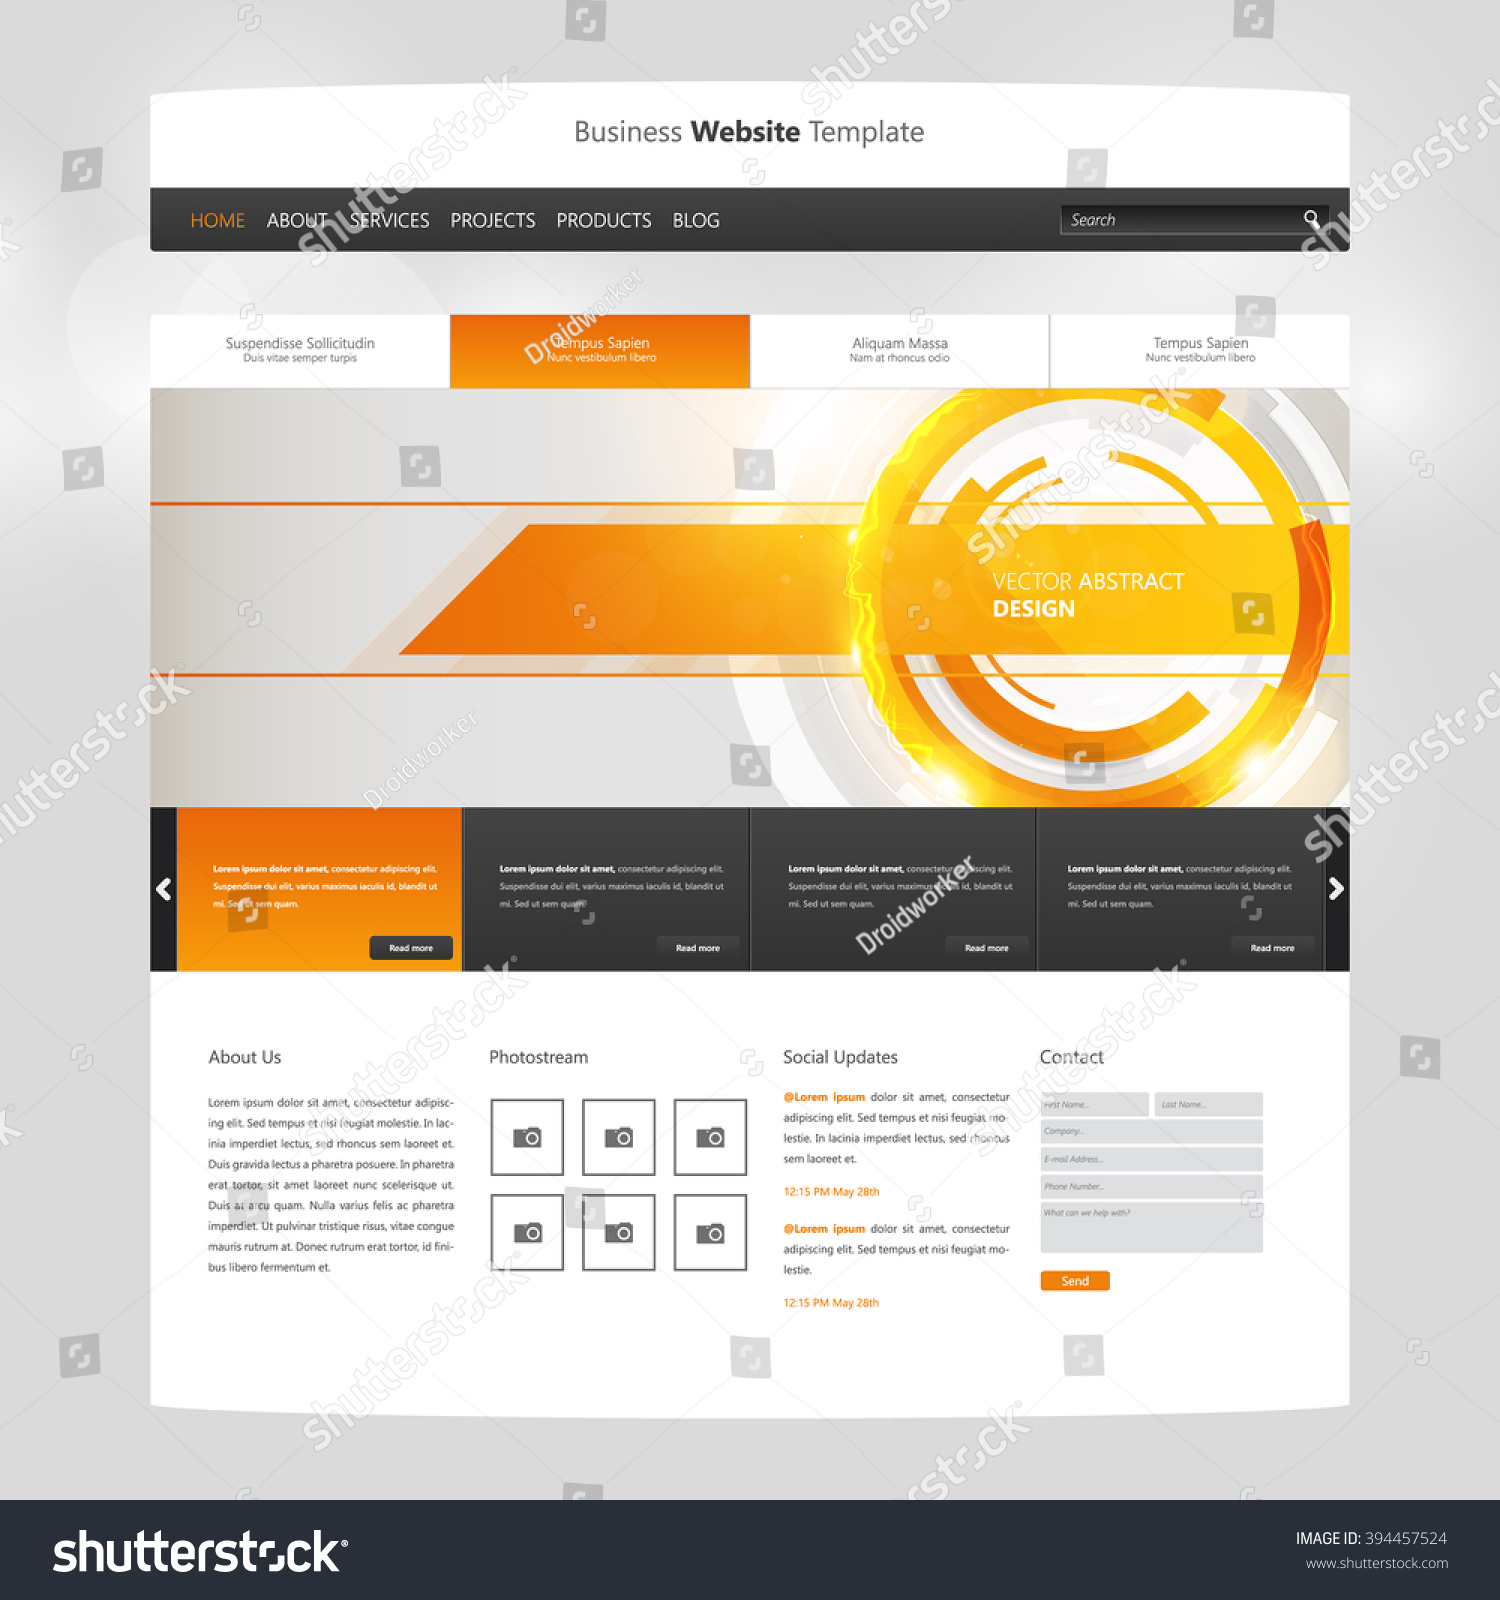 Technology Orange Colored Website Template Vector Stock. Safety Tracking Software Build Your Own Cloud. Swedish Massage School Nyc Il Auto Insurance. What Is Personal Finance Best Finance Schools. Fashion Merchandising Schools In New York. Android Phone Best Battery Dentist In St Paul. What Is Cash Advance On A Credit Card. Accredited Investor Questionnaire. Email Solutions For Small Businesses